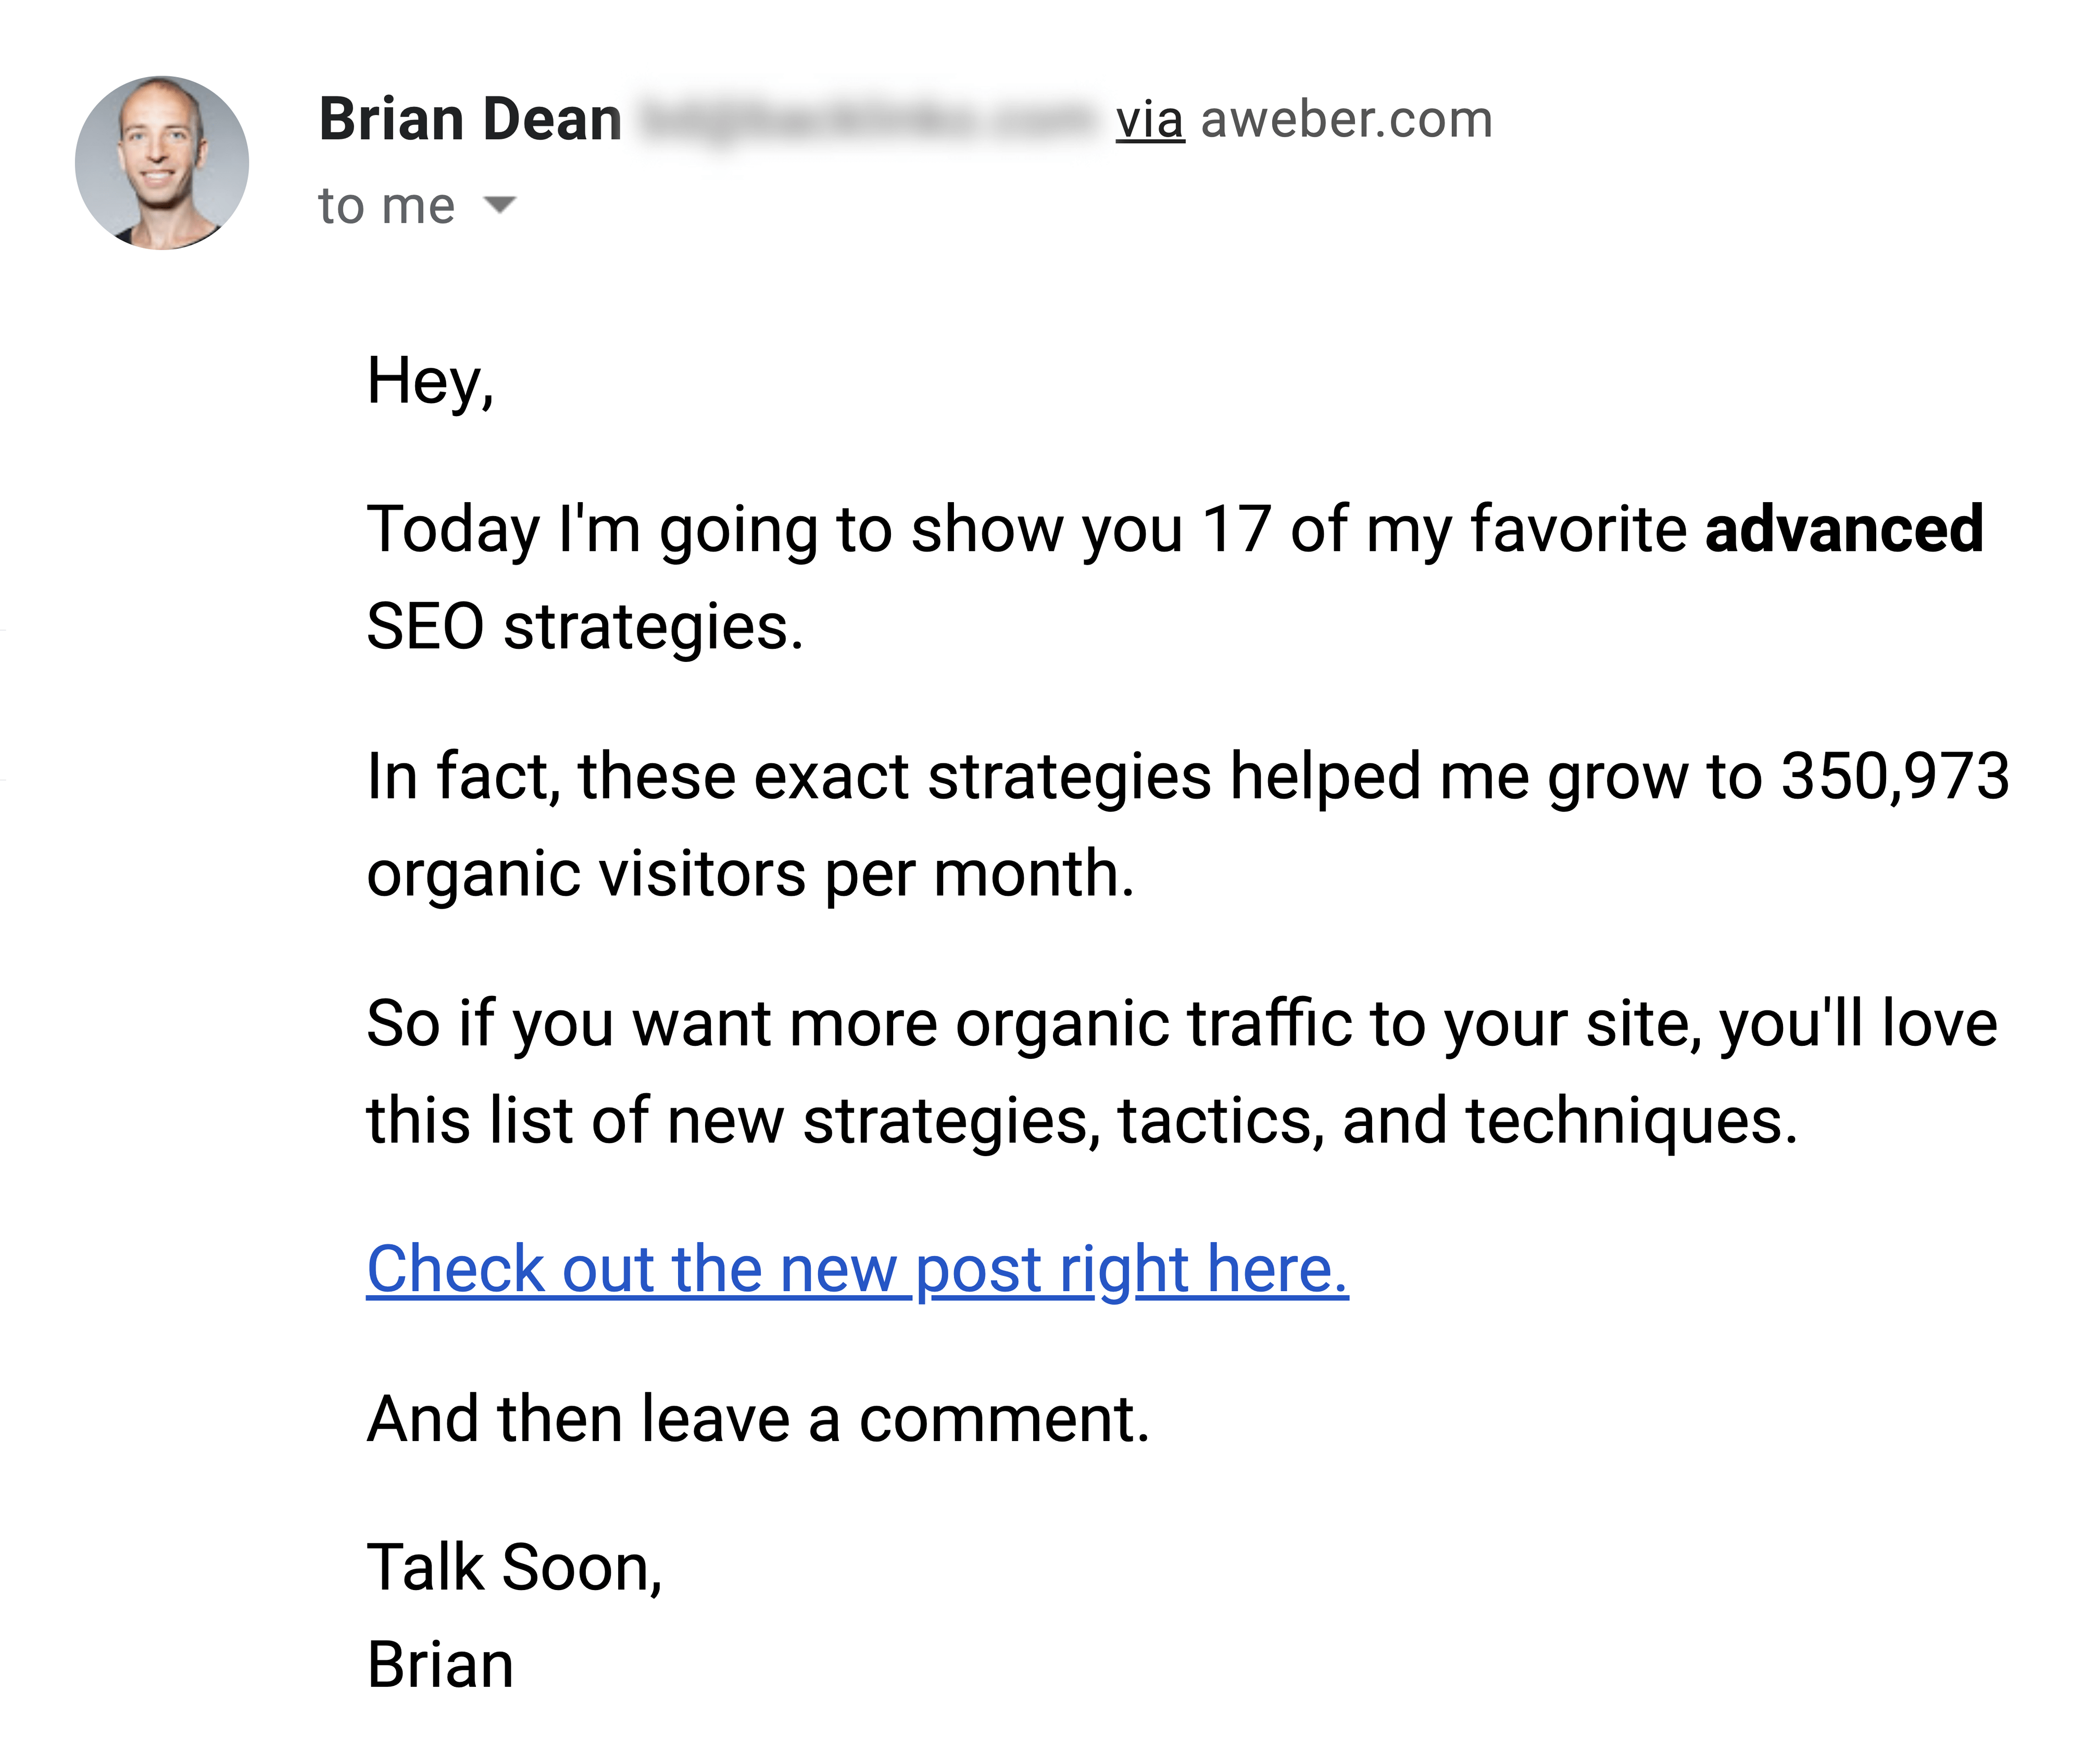 Advanced SEO Strategies Post Announcement Email